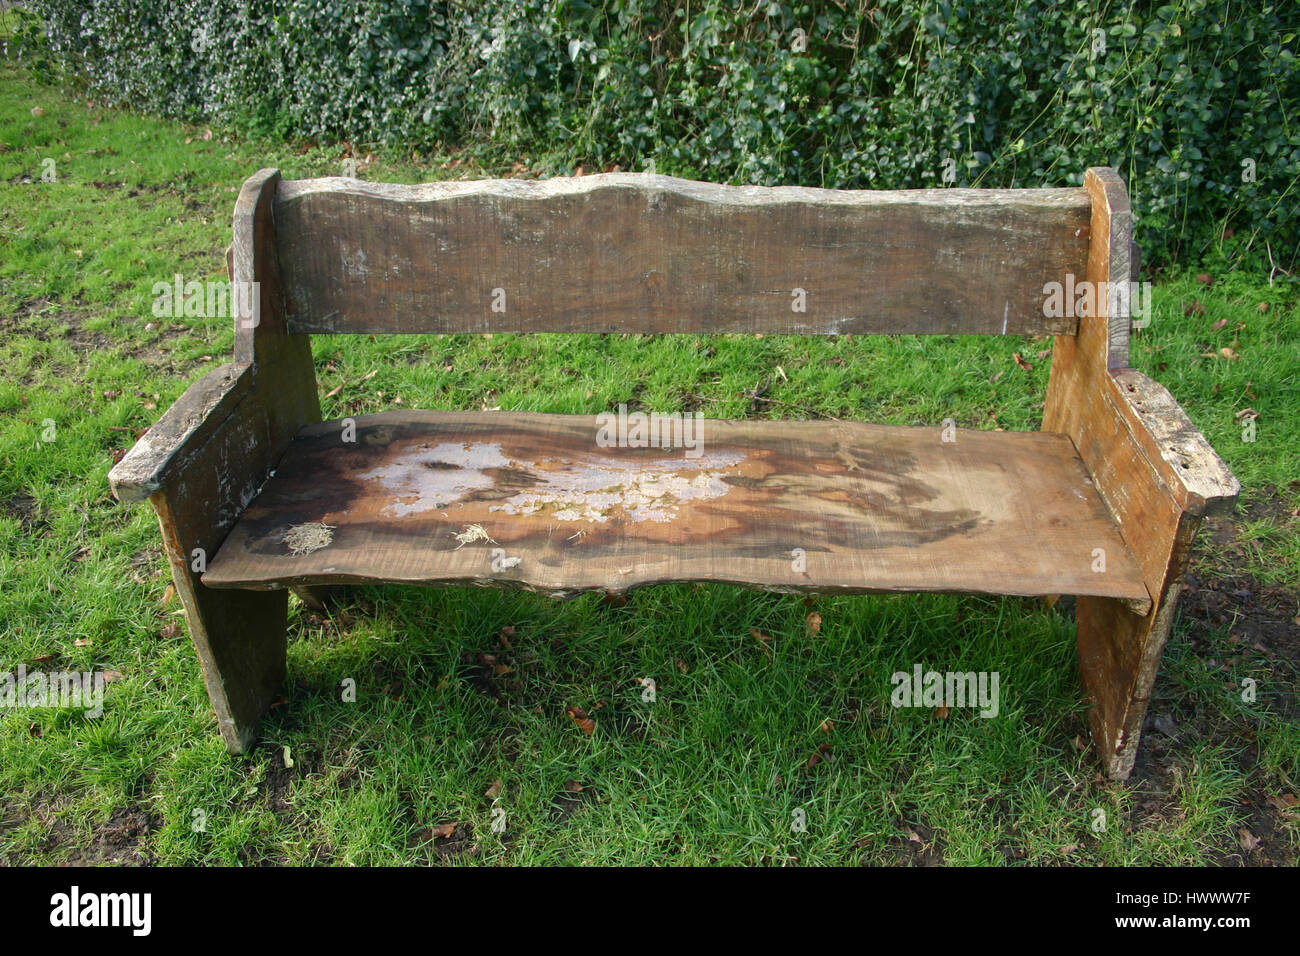 Rustic bench seat made from rough cut tree planks. The seat is worn ...